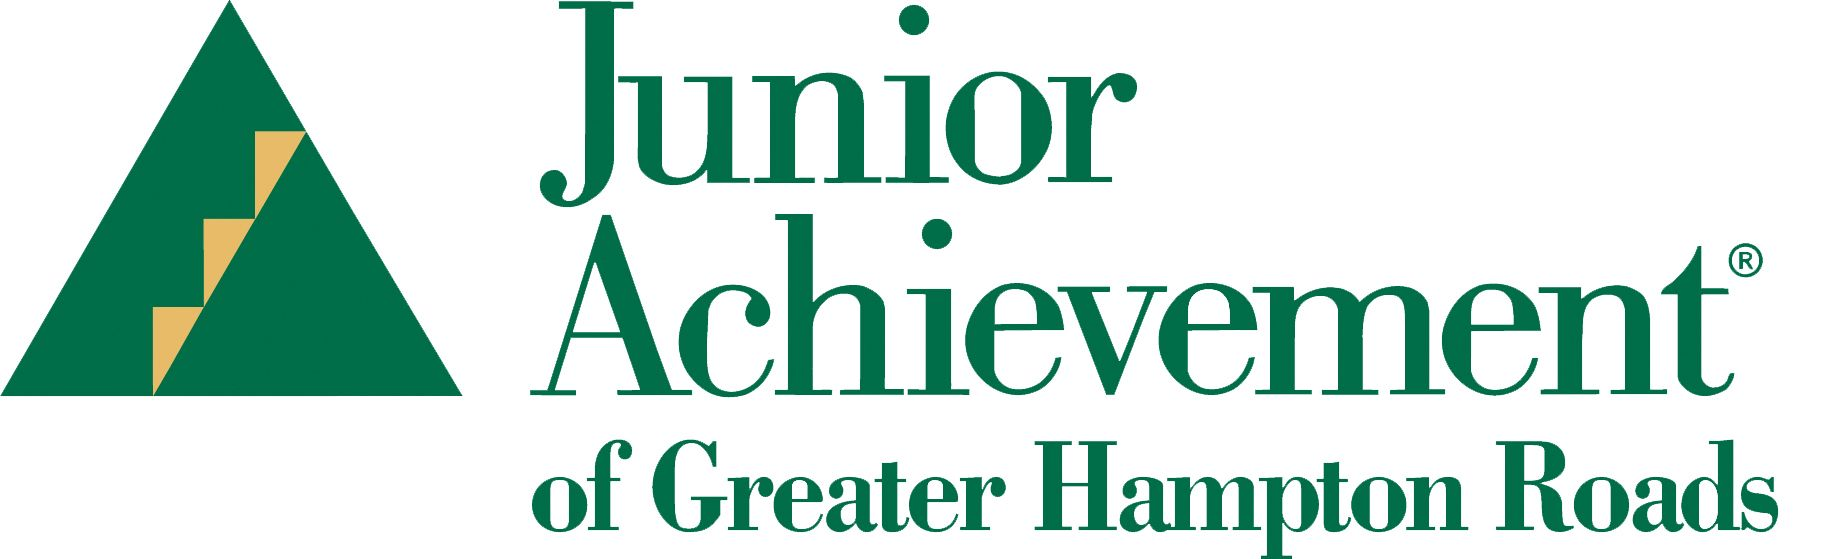 Junior Achievement of Greater Hampton Roads logo